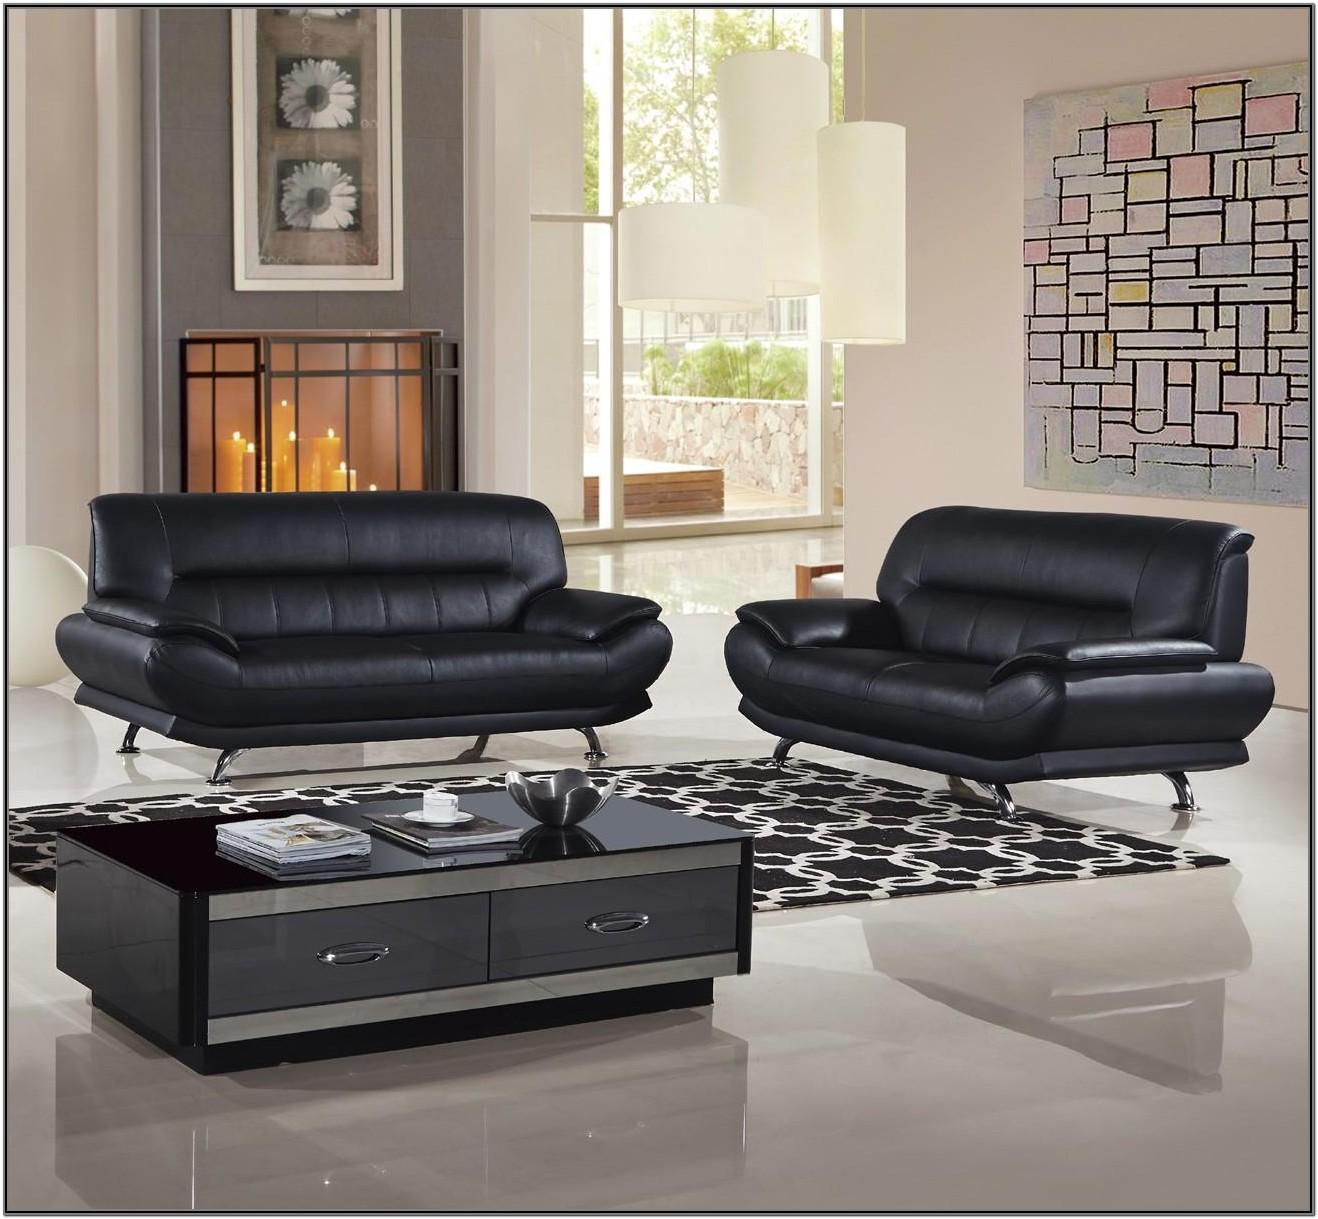 Modern Living Room Black Couches